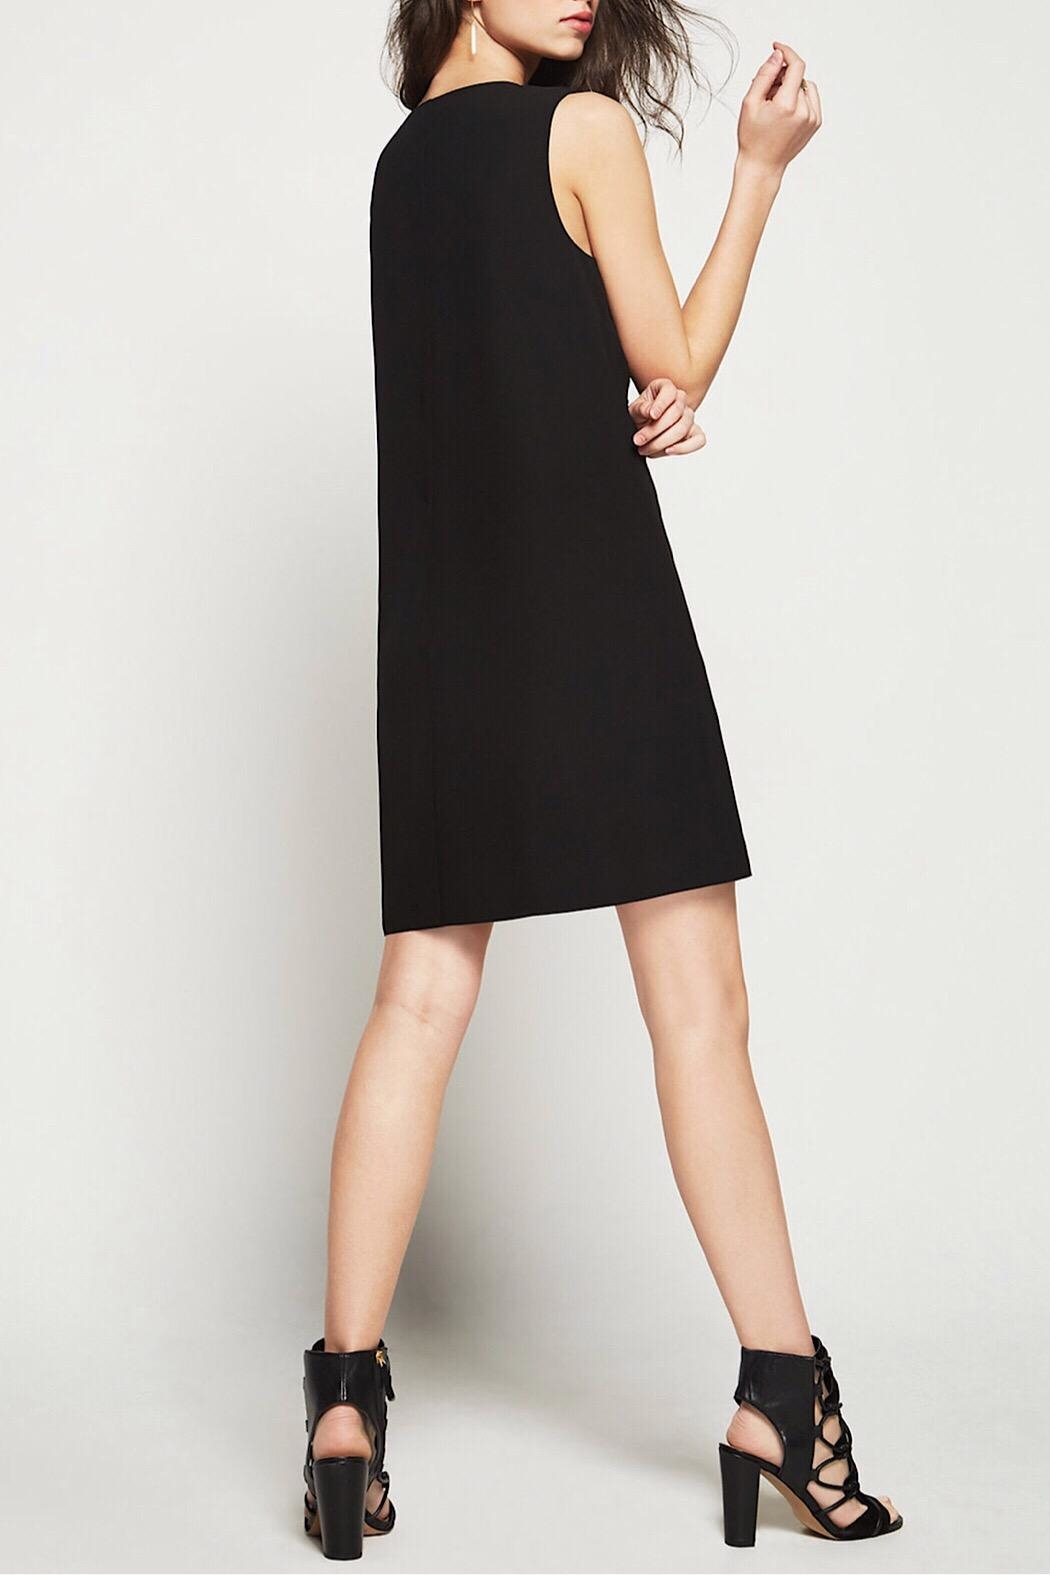 BCBGeneration Chiffon A-Line Dress - Side Cropped Image